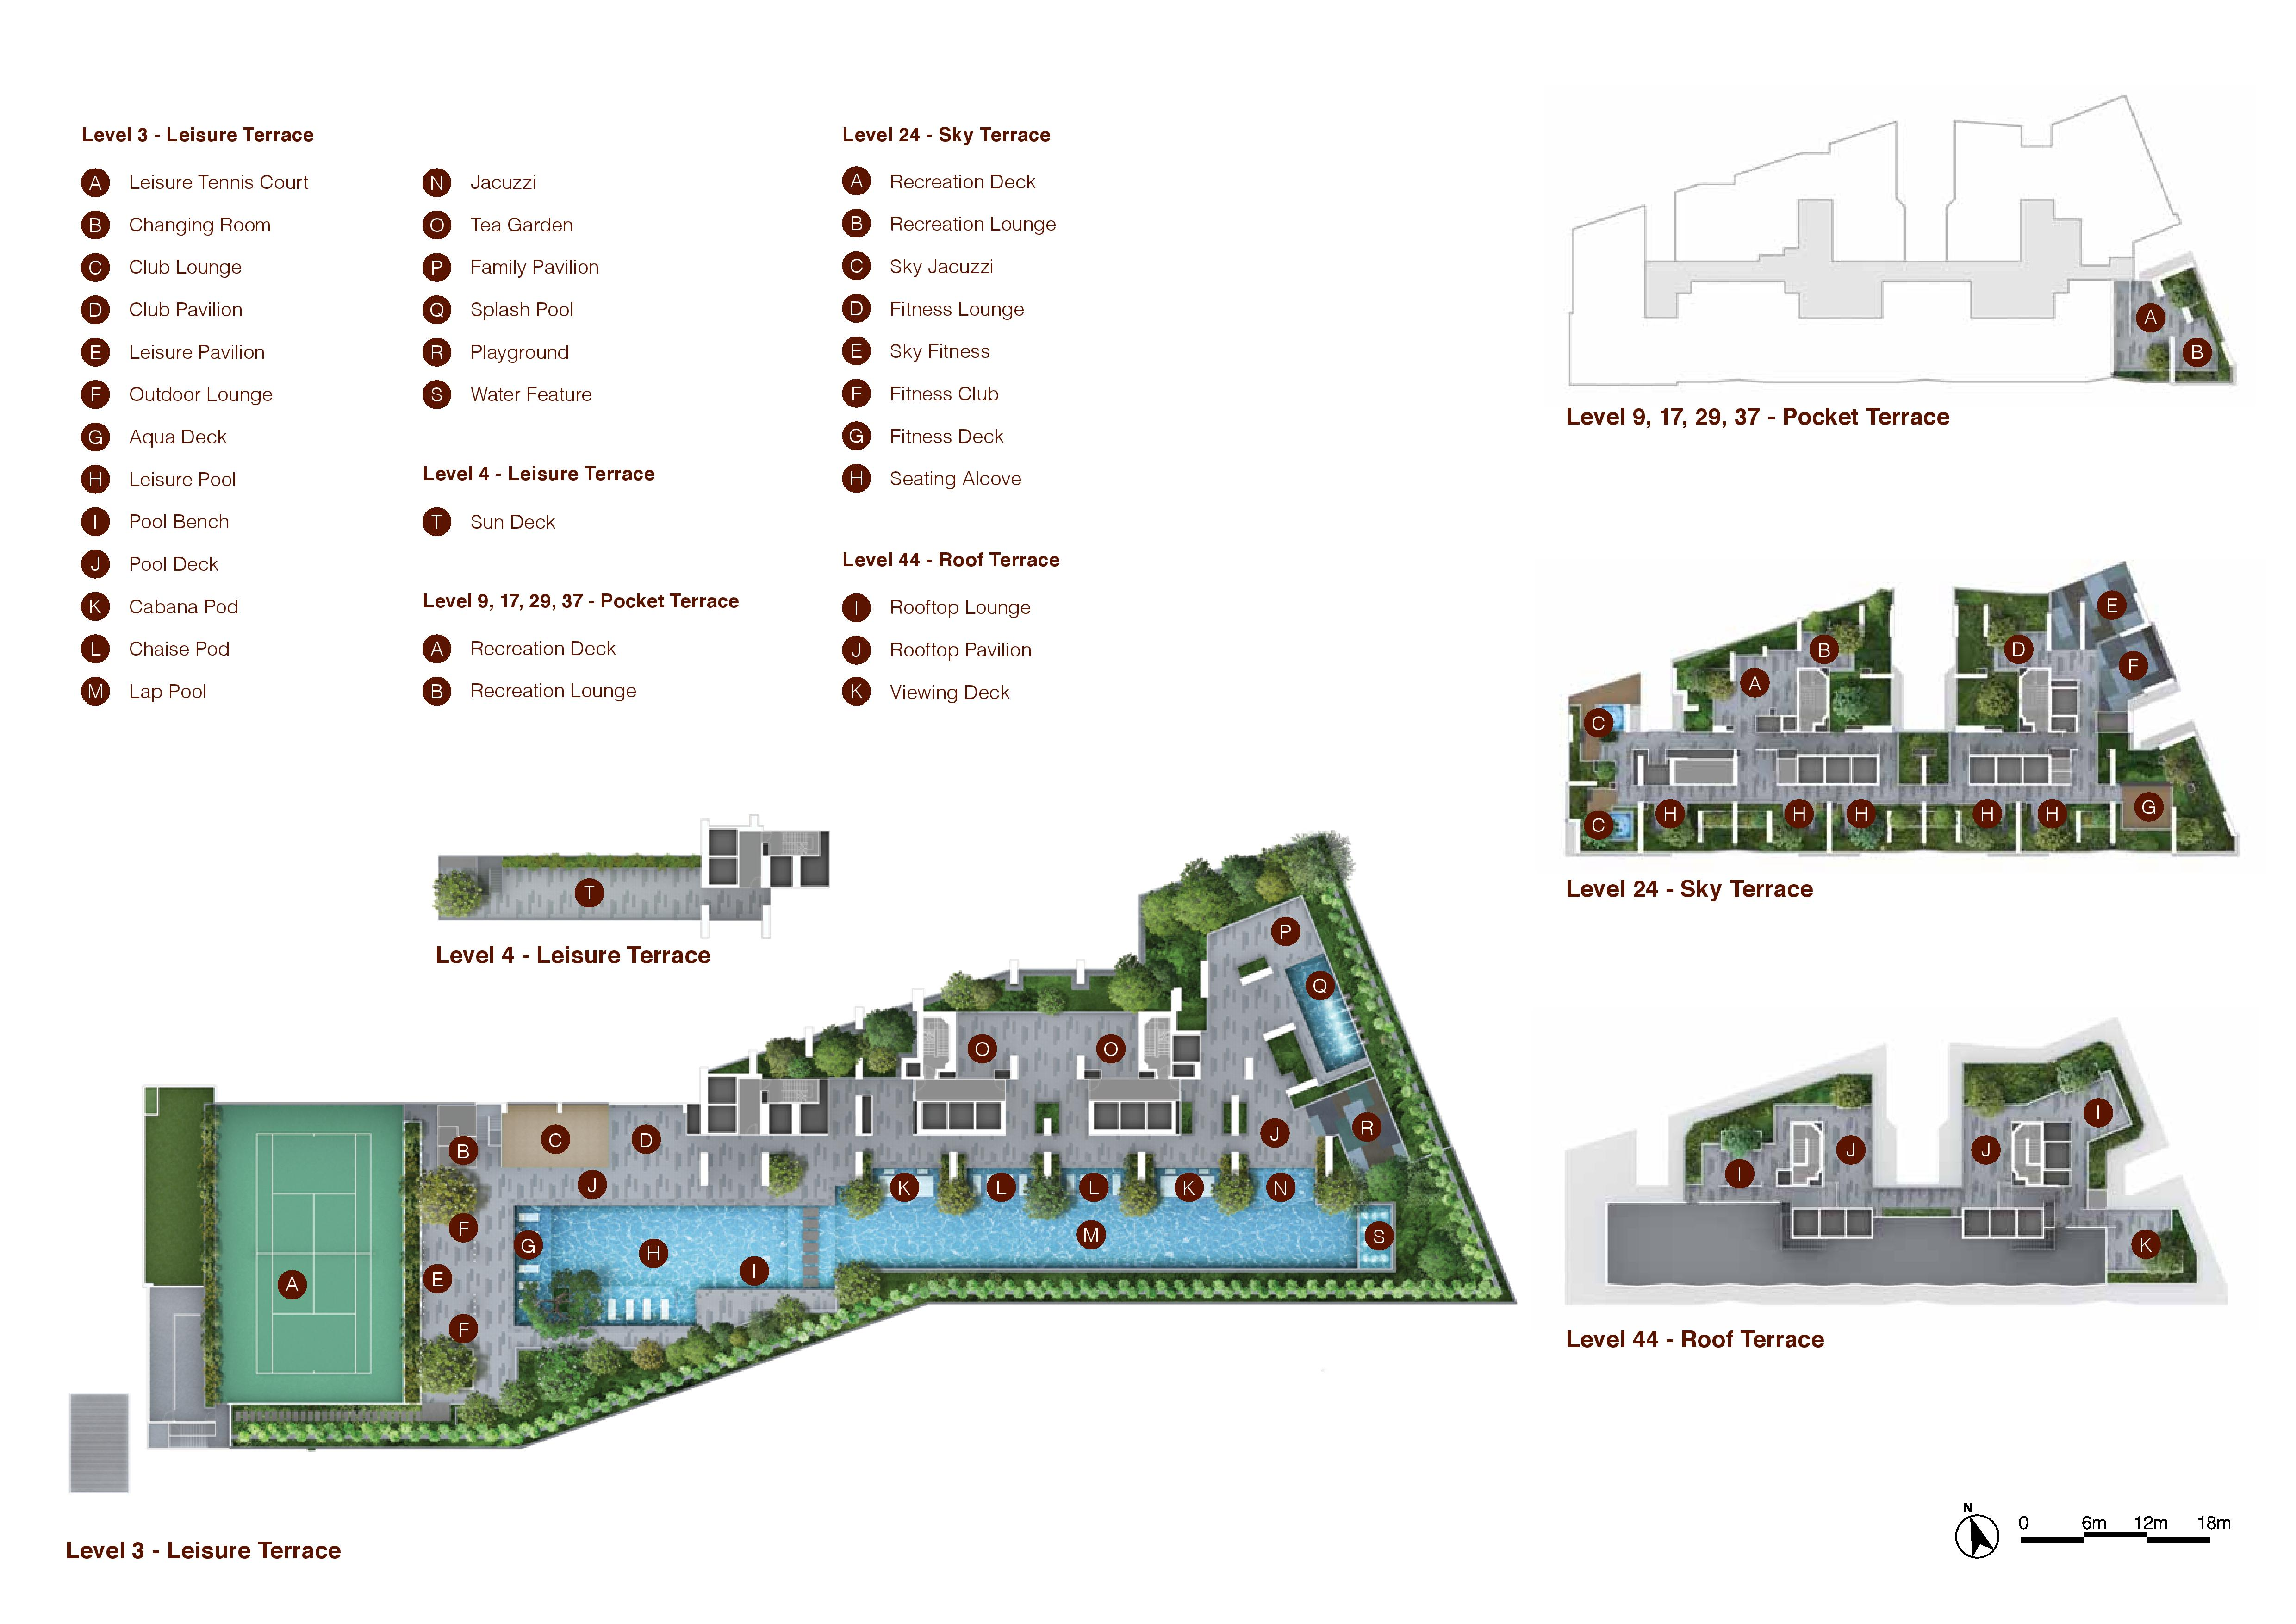 Artra All Levels Facilities Site Map